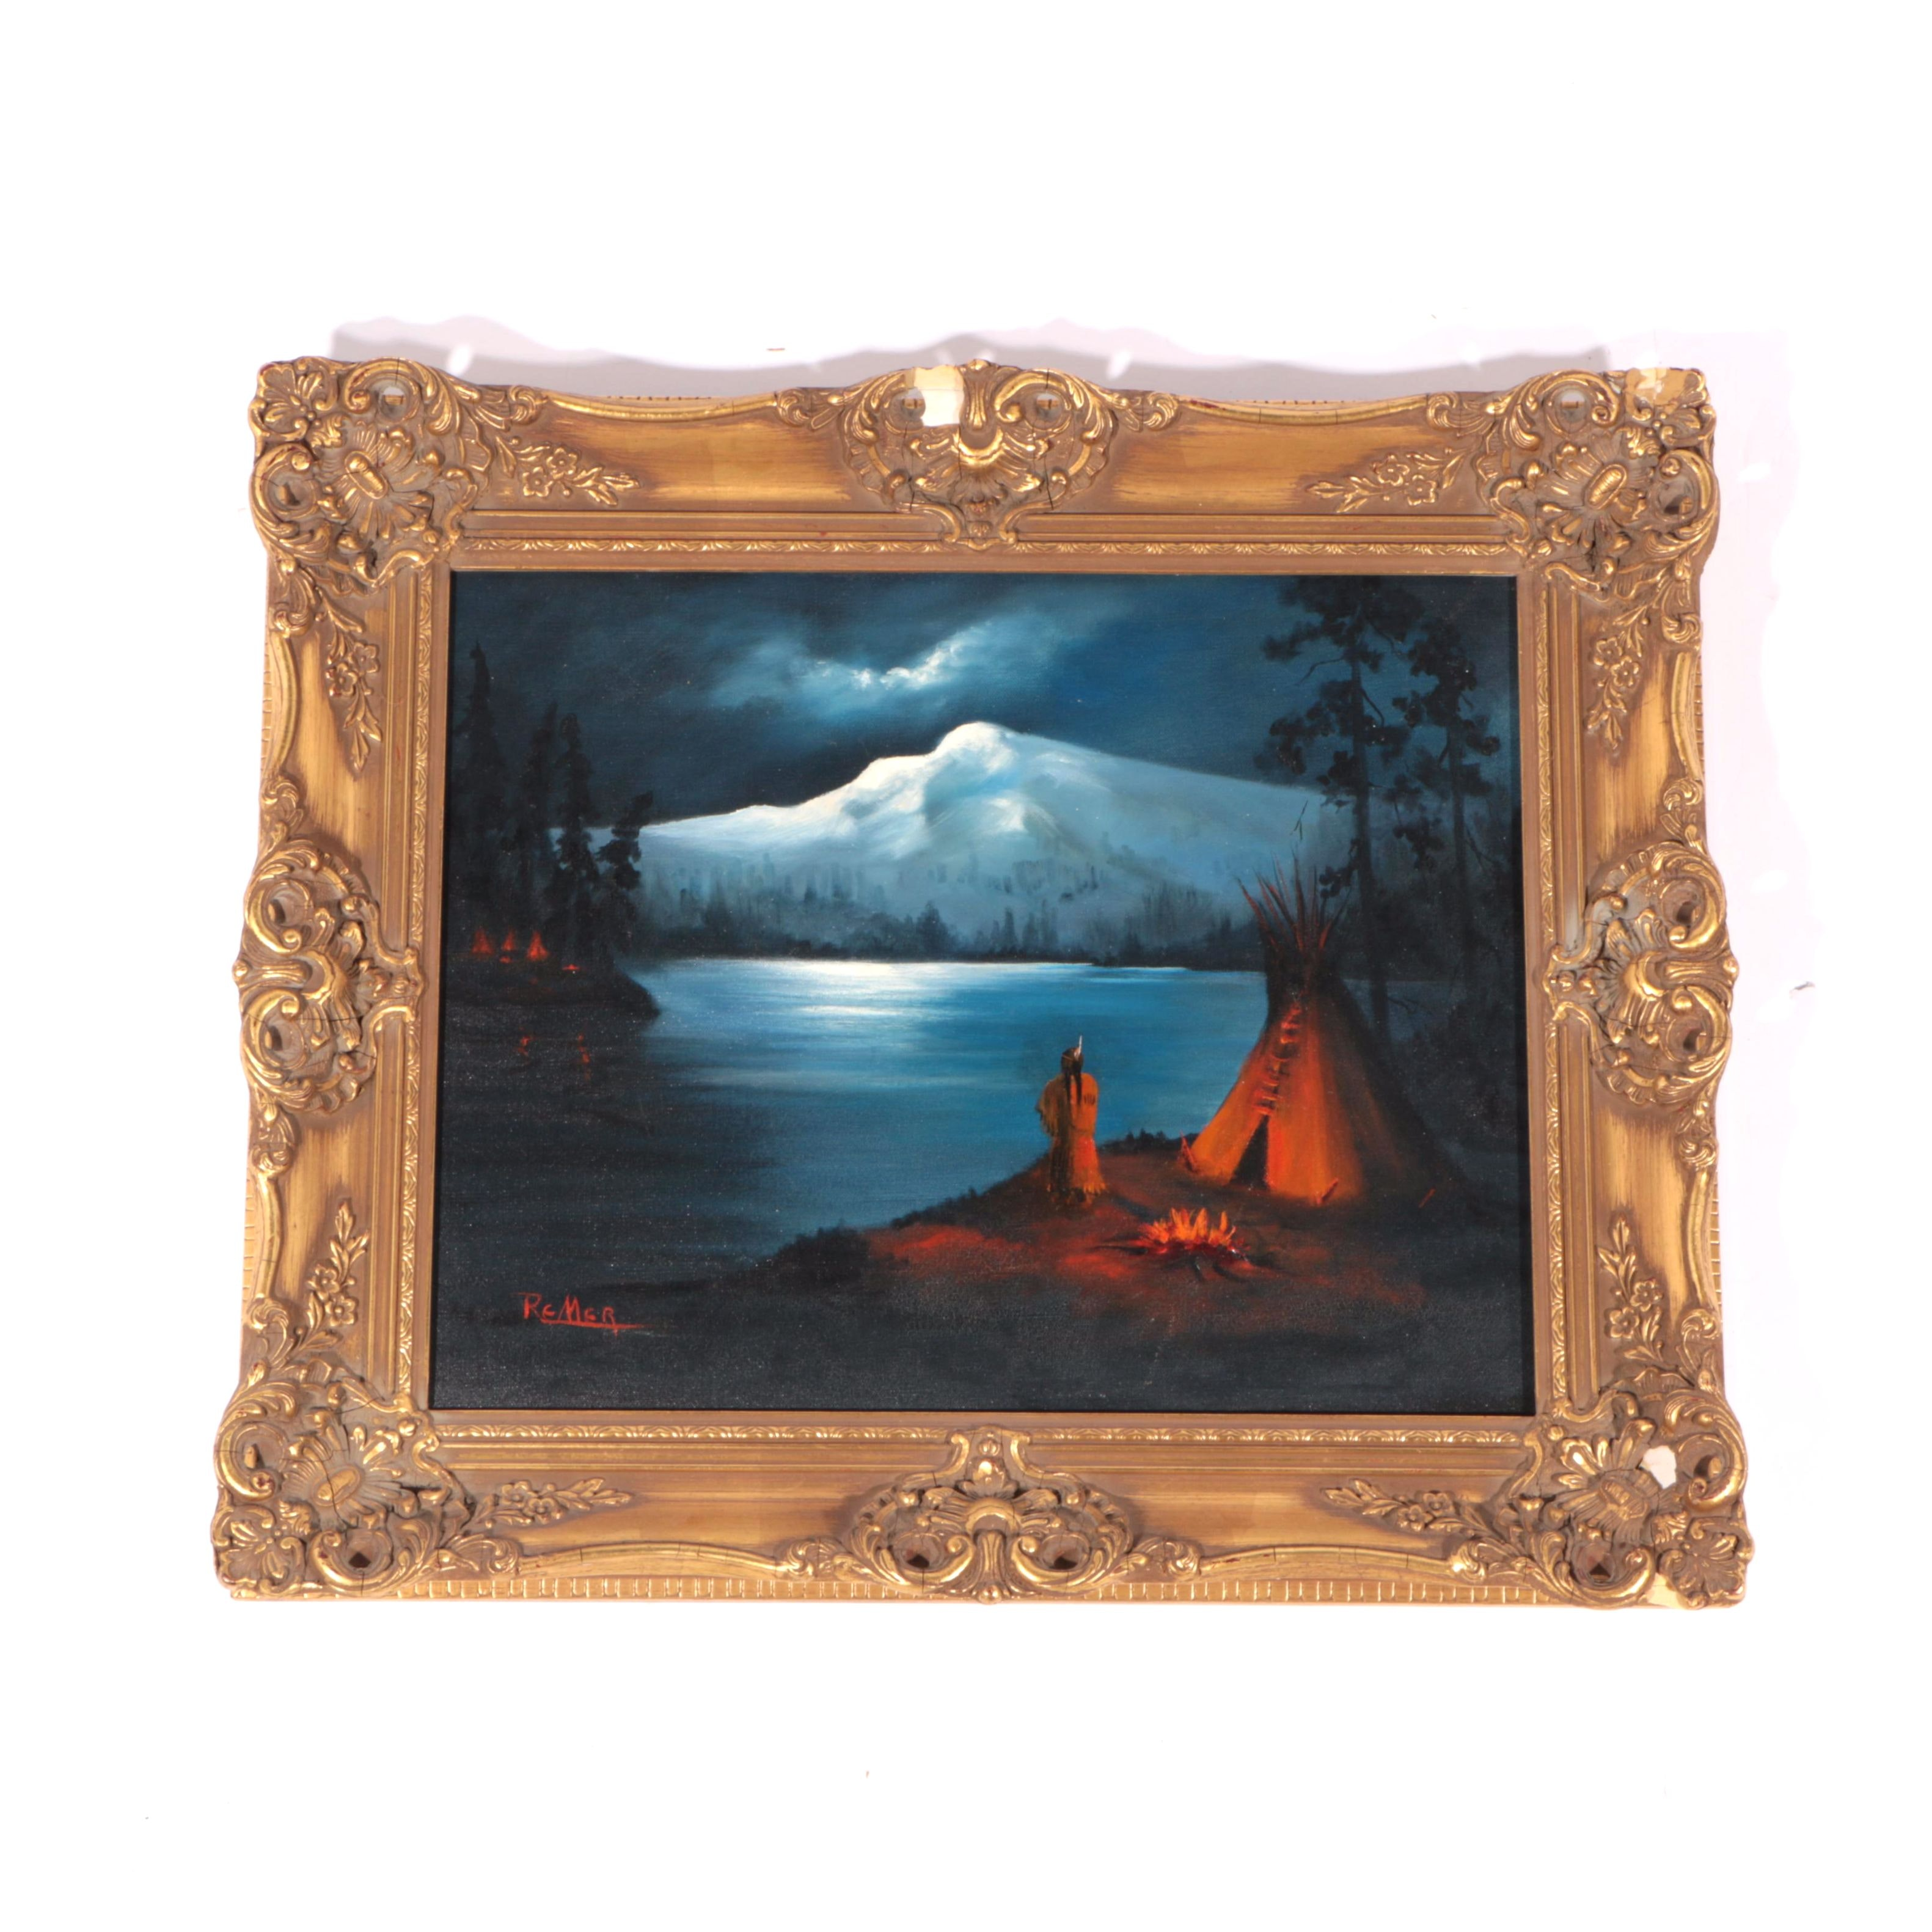 Remer Oil Painting on Canvas of Native American Campsite